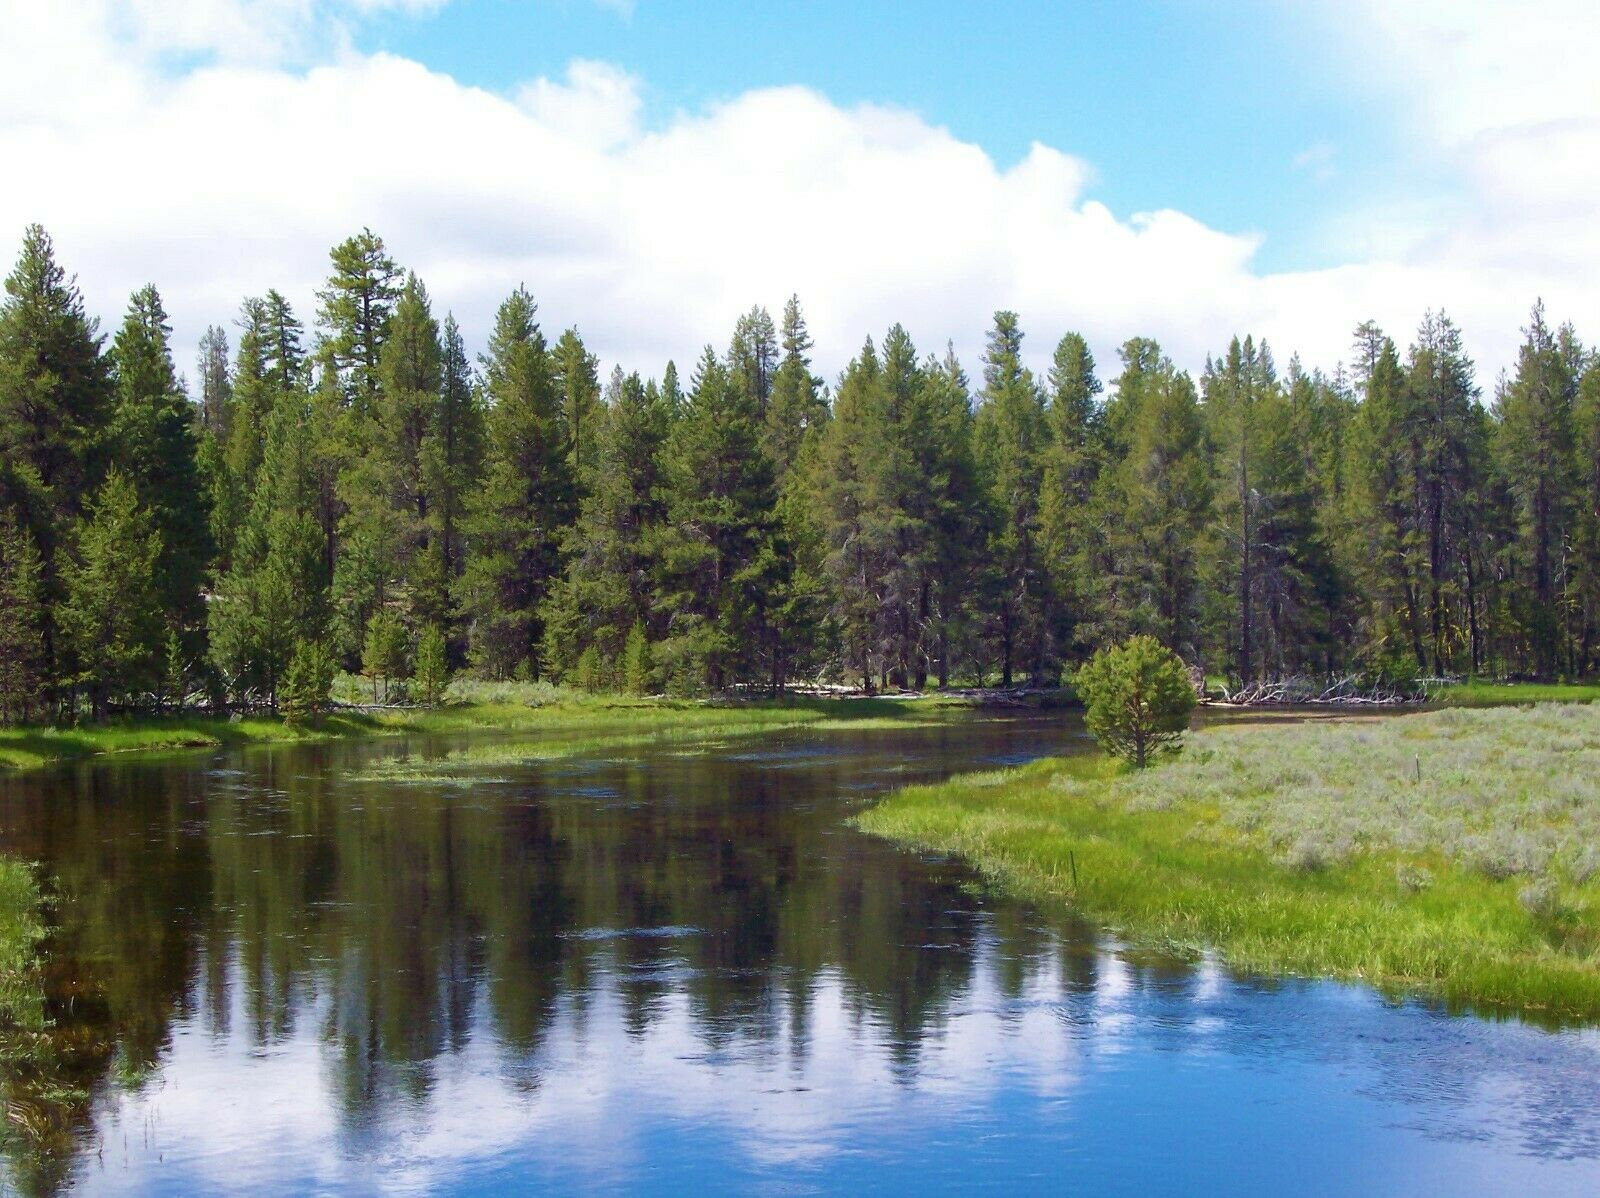 1.55 AC OREGON LAND GORGEOUS RANCH NEAR CRATER LAKE CALIFORNIA NO RESERVE  - $2,650.00